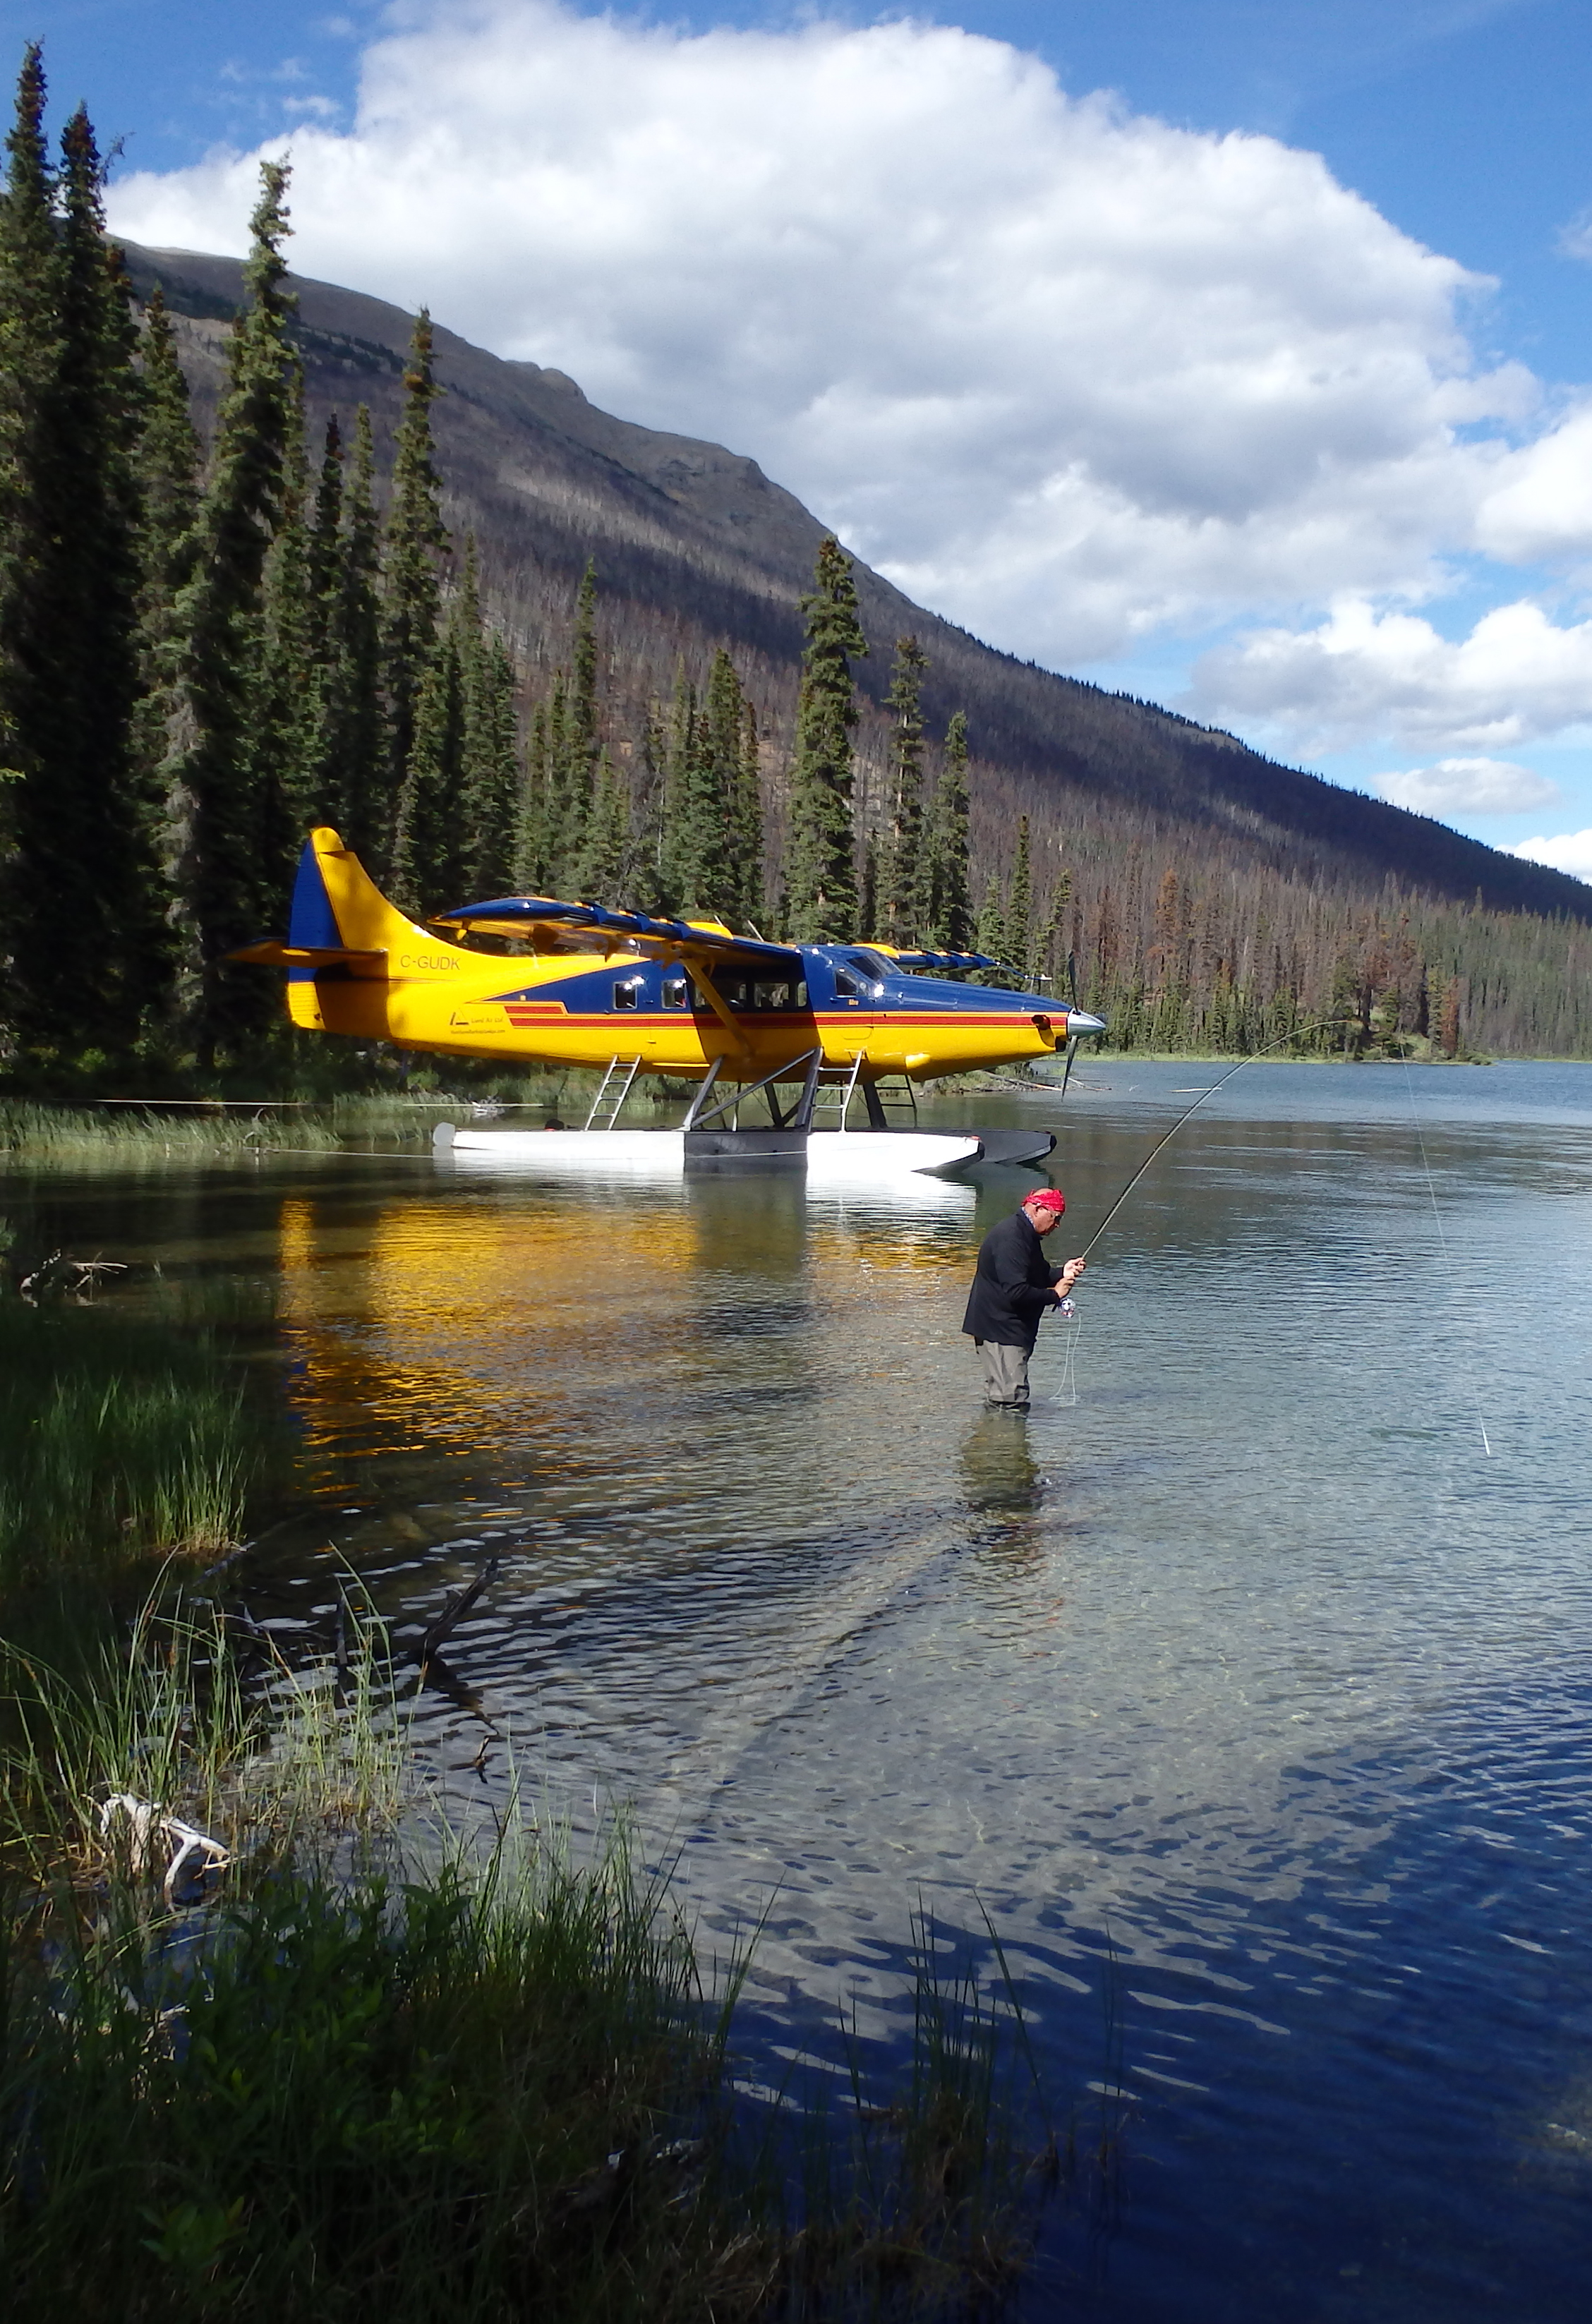 Fly in fishing Northern rockies style